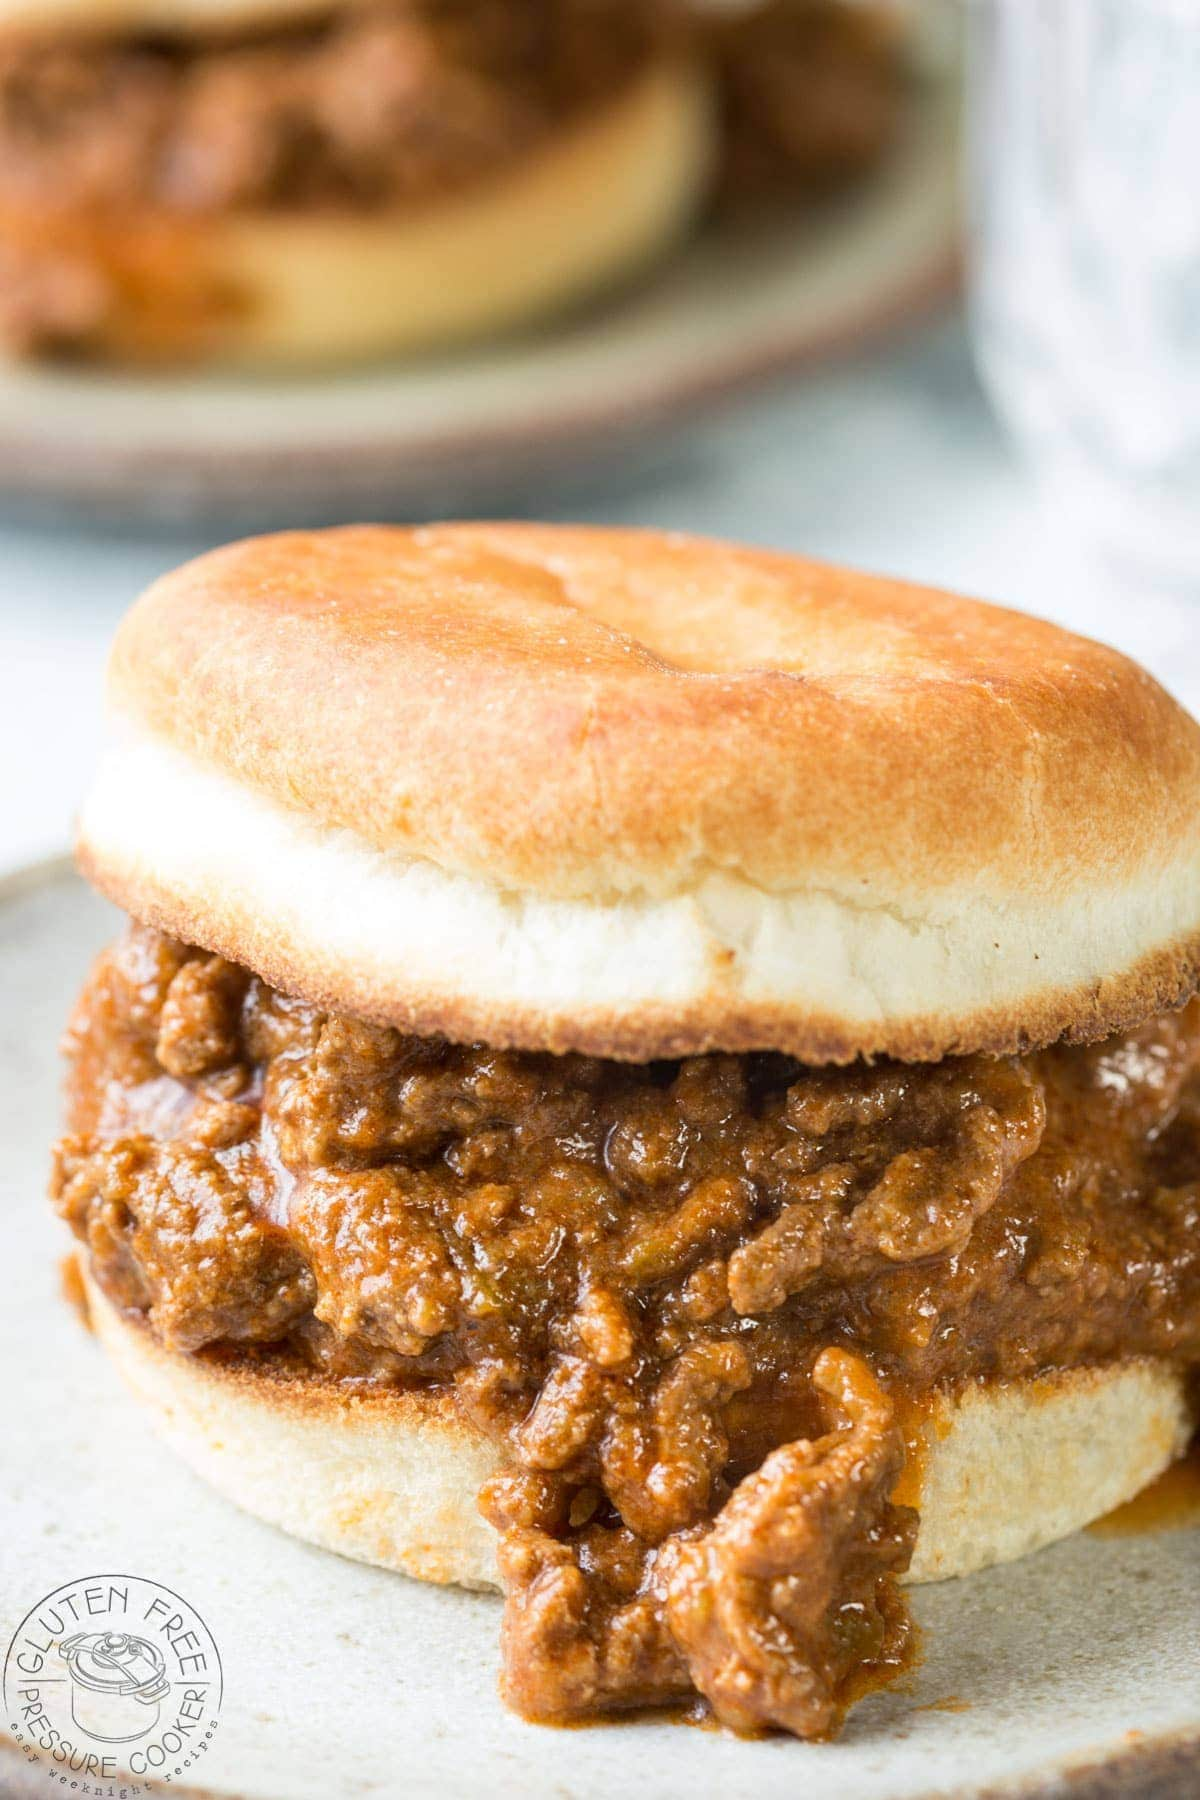 Instant Pot Sloppy Joes recipe on a plate with bread roll